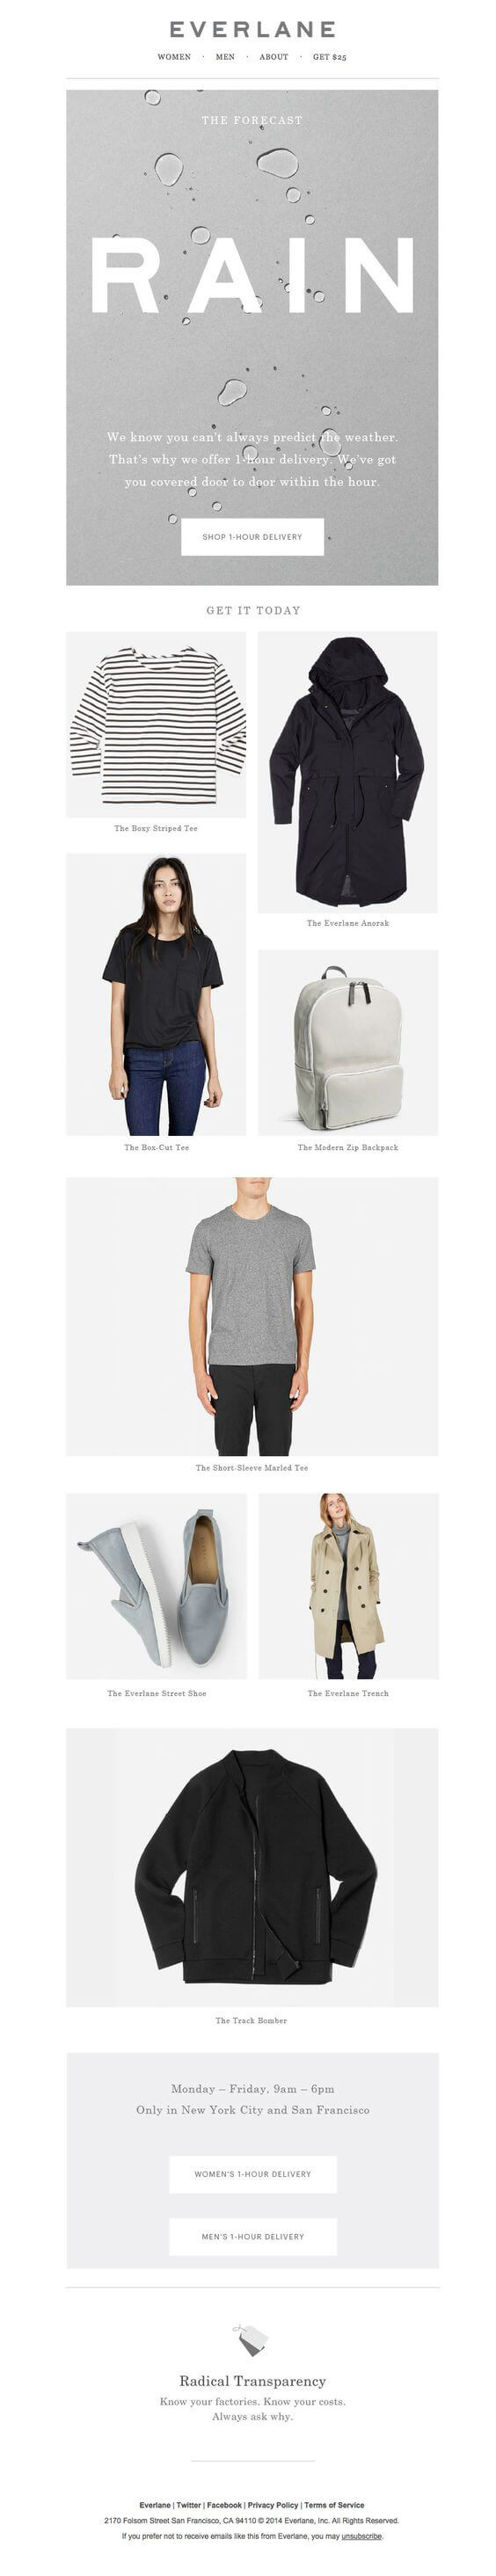 Seasonal Email Templates_Everlane_Monsoon